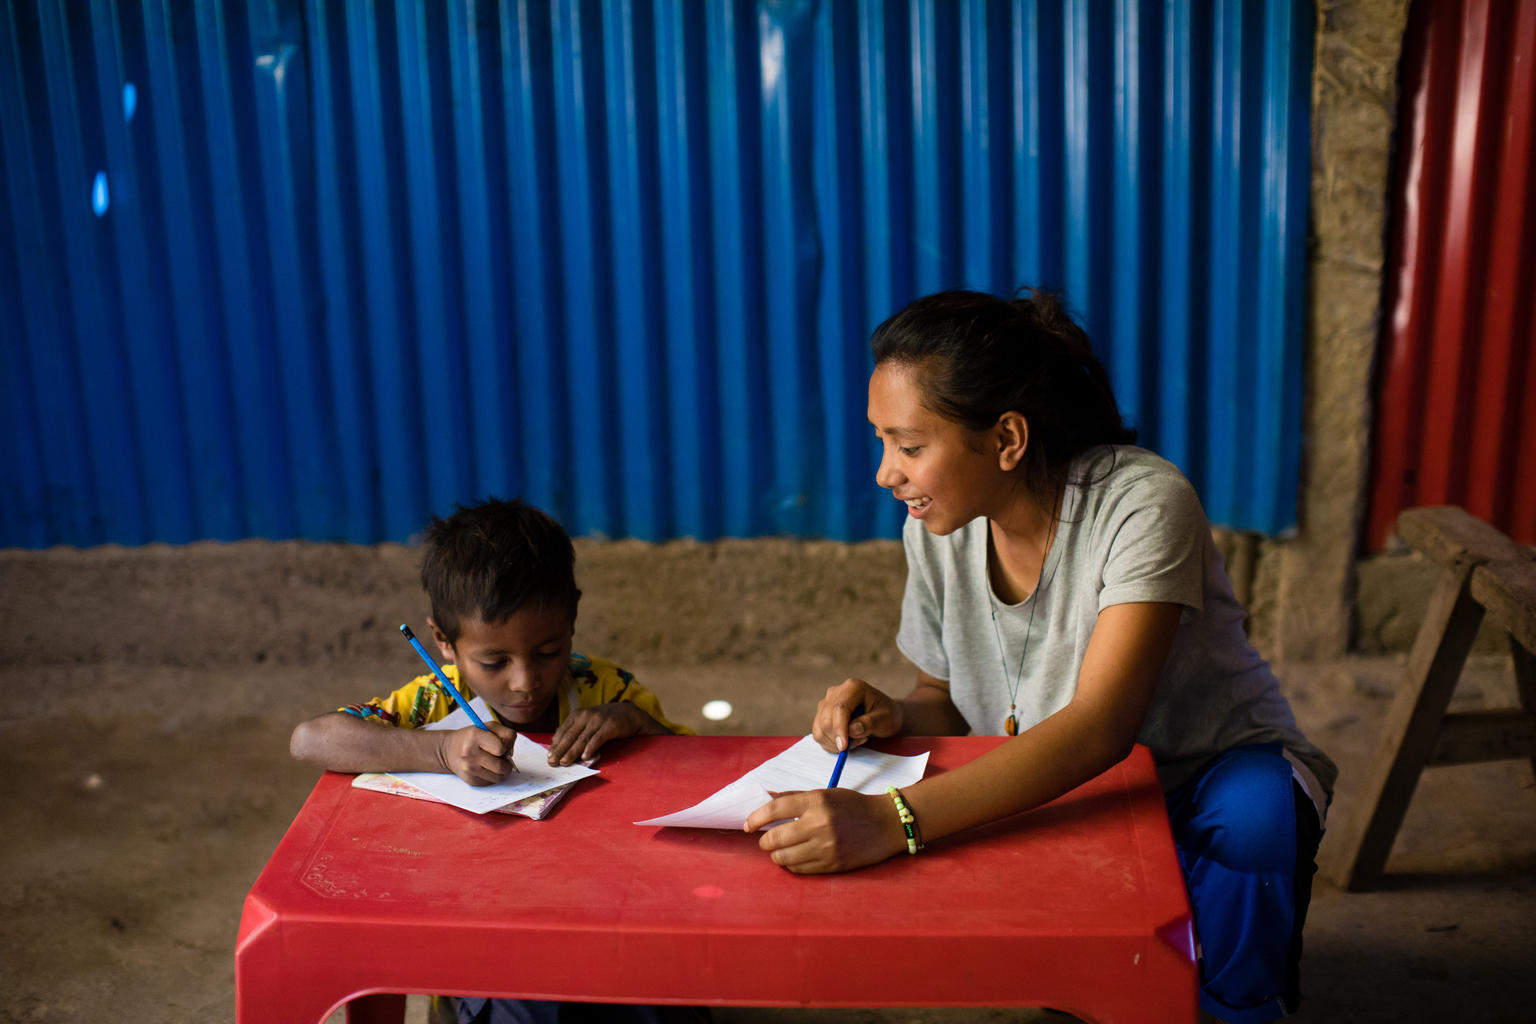 Cidalia M.E da Costa (16) , help her younger brother Januario Viegas da Costa (6) learning at home, in Aileu, Timor-Leste.